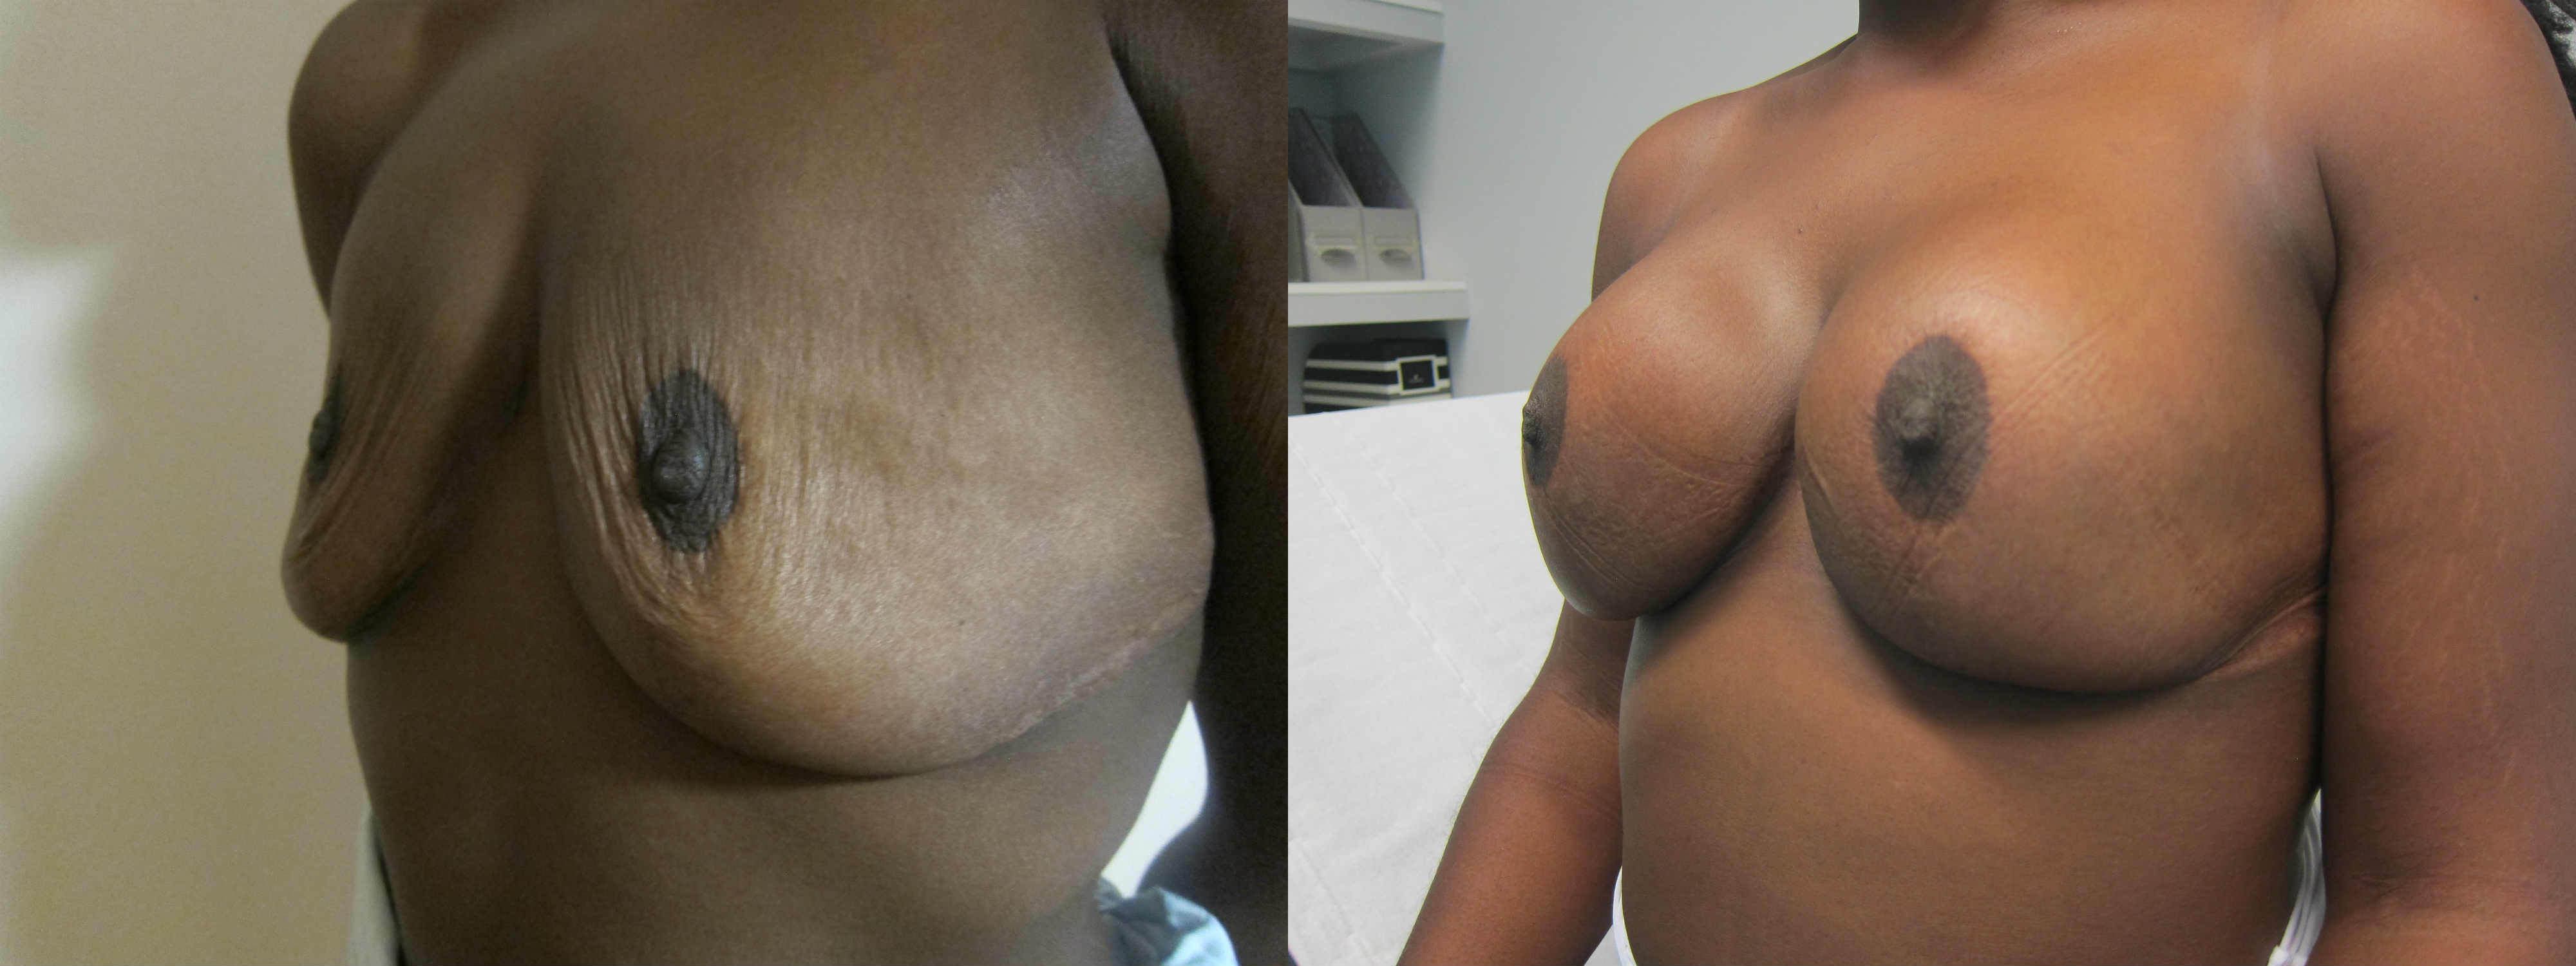 Breast Implants after Reduction